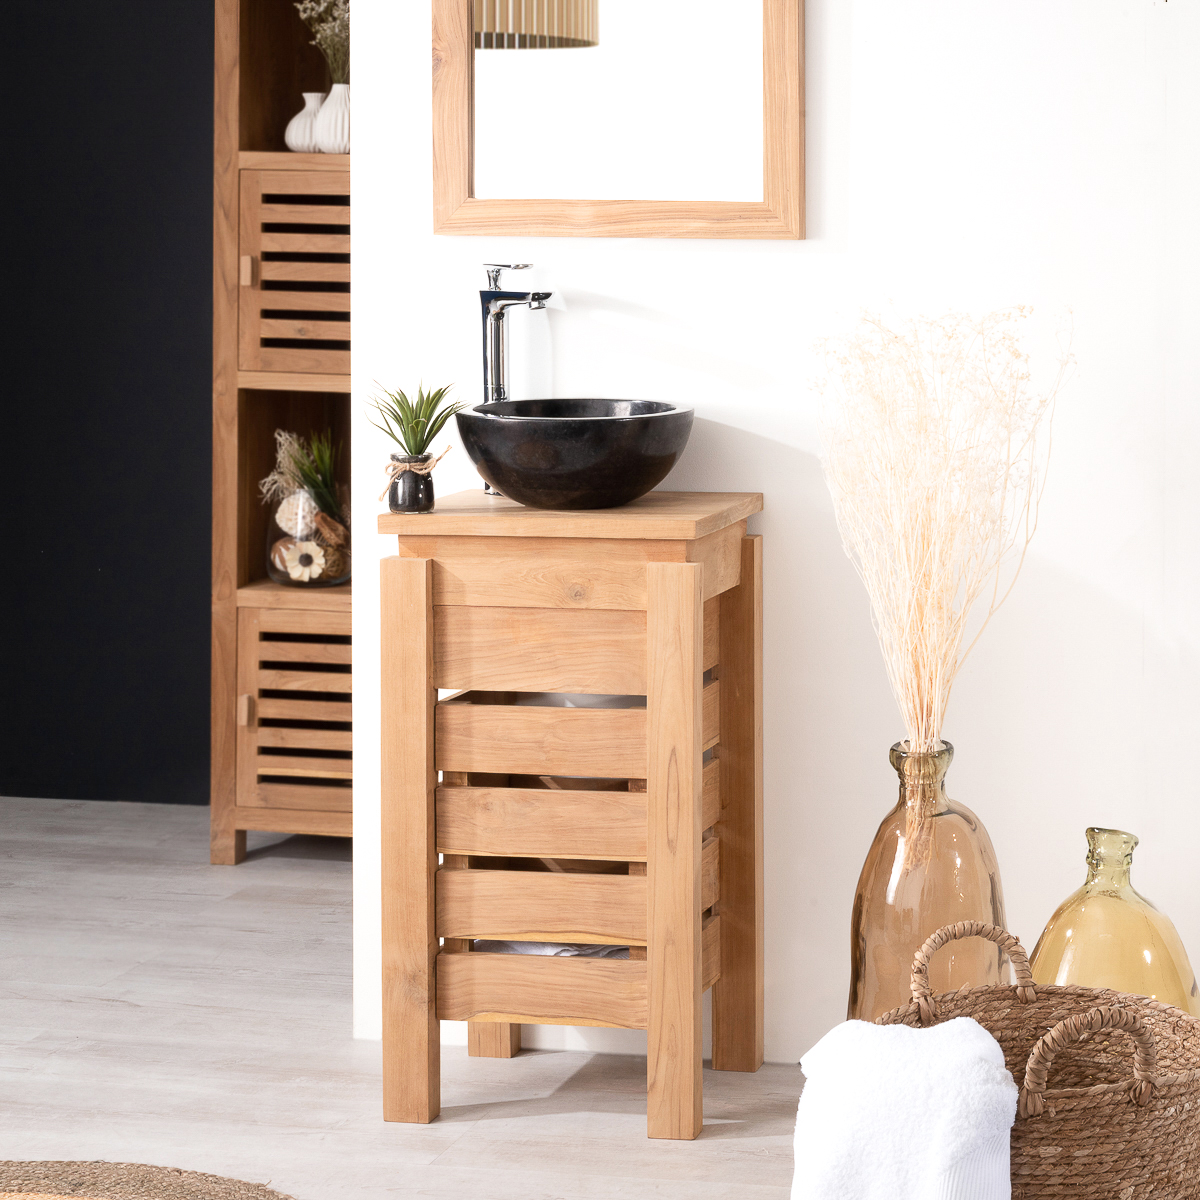 Meuble sous vasque simple vasque en bois teck massif zen rectangle naturel l 40 cm for Meuble de salle de bain en solde